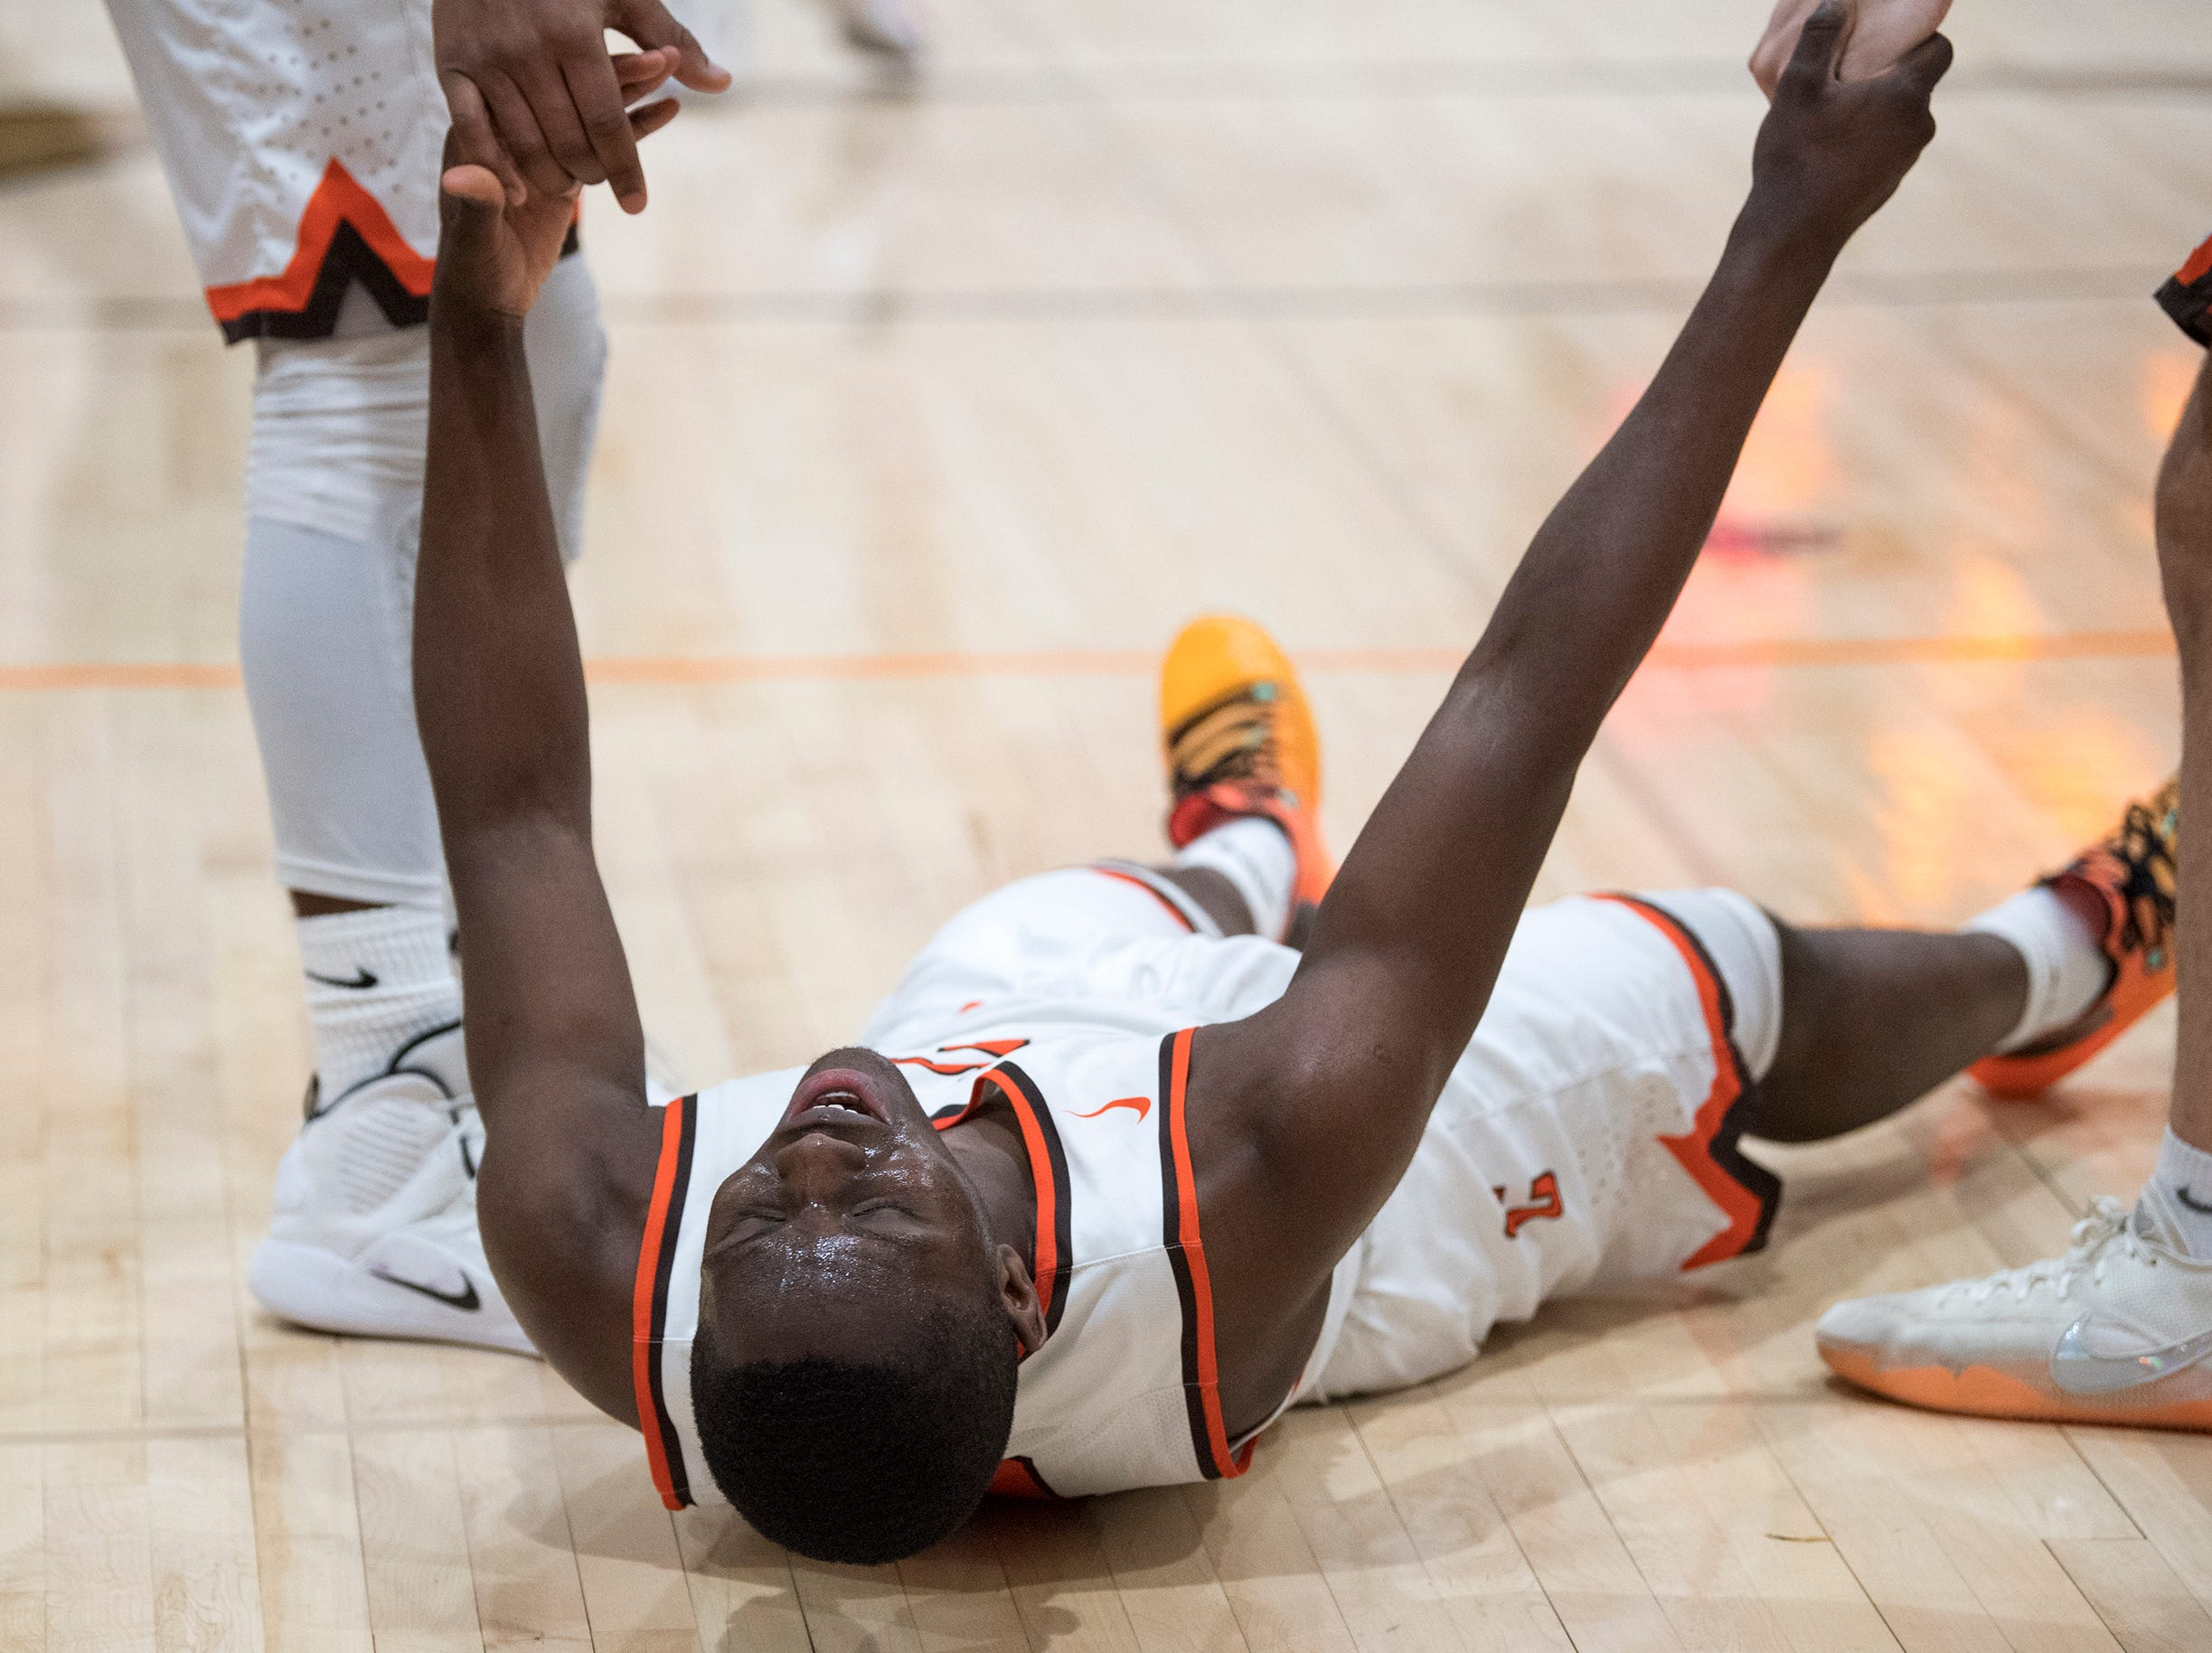 Cherokee's Olare Oladipo (4) is helped up by teammates during a game against Shawnee Monday, Feb. 25, 2019 at Cherokee High School in Marlton, N.J. Cherokee won 54-38.